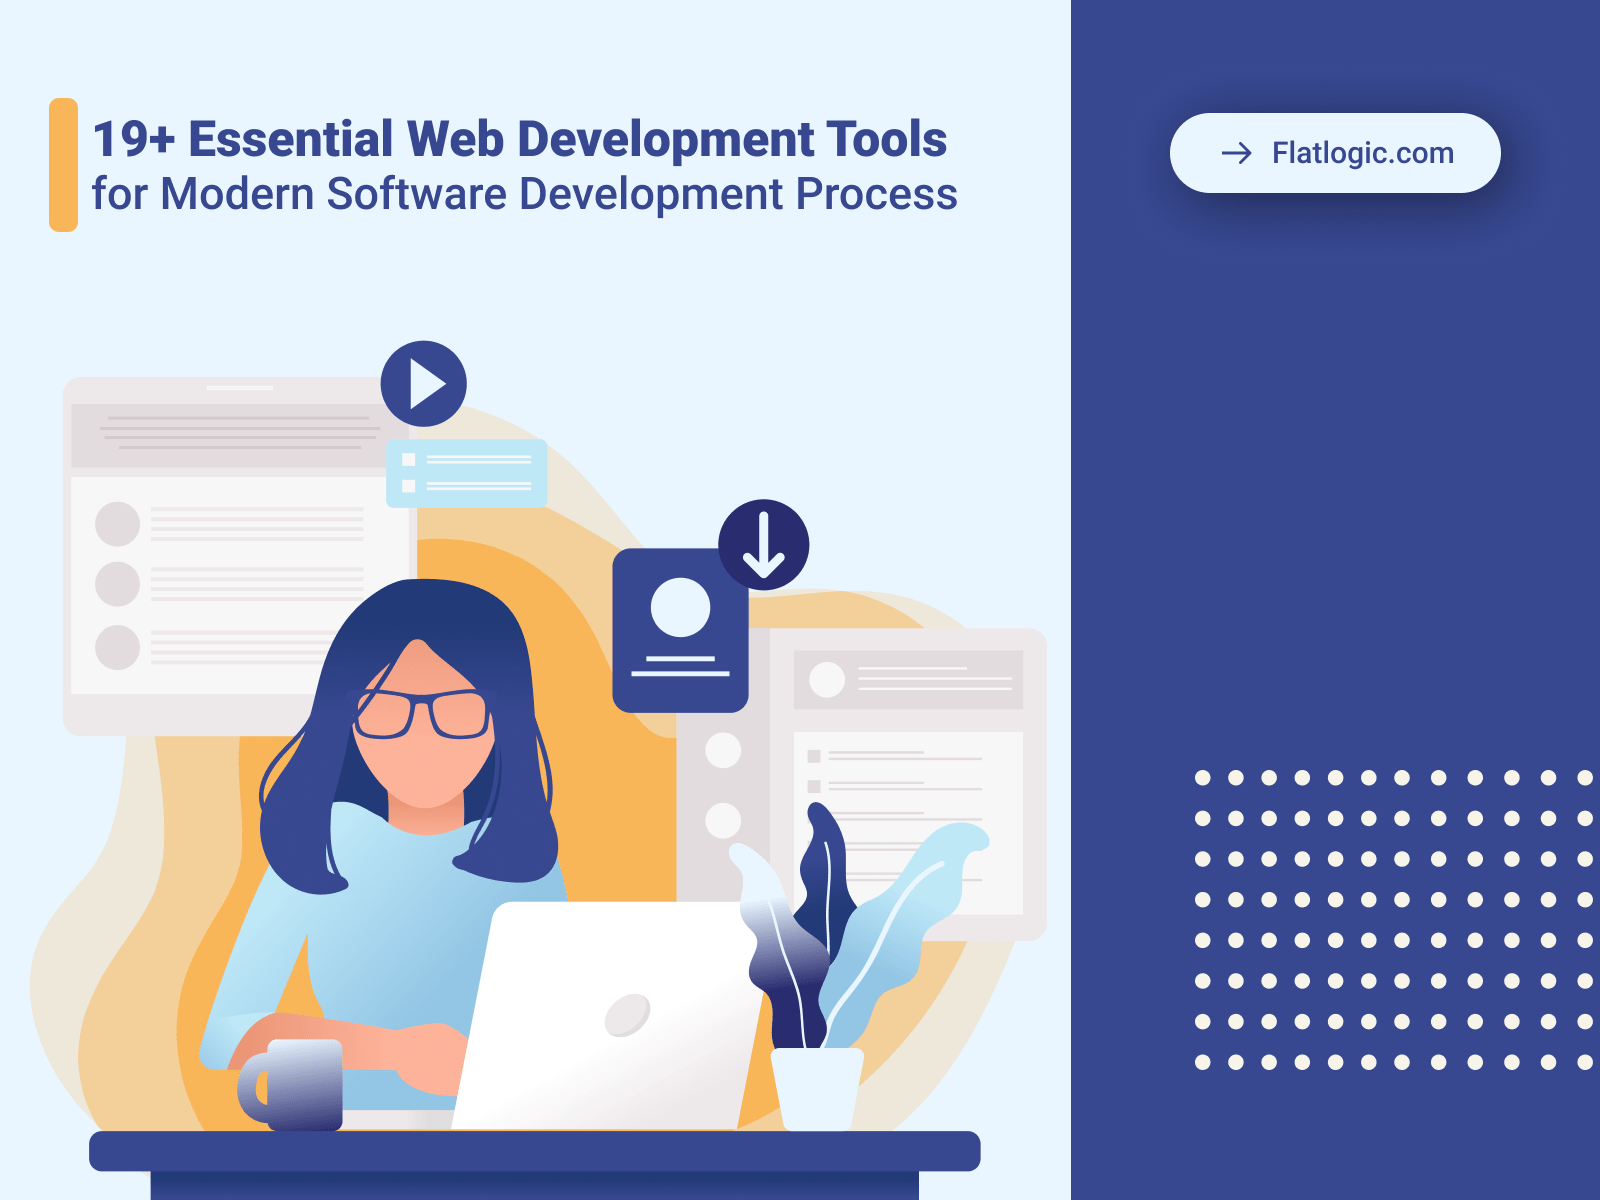 19+ Essential Web Development Tools for the Modern Software Development Process